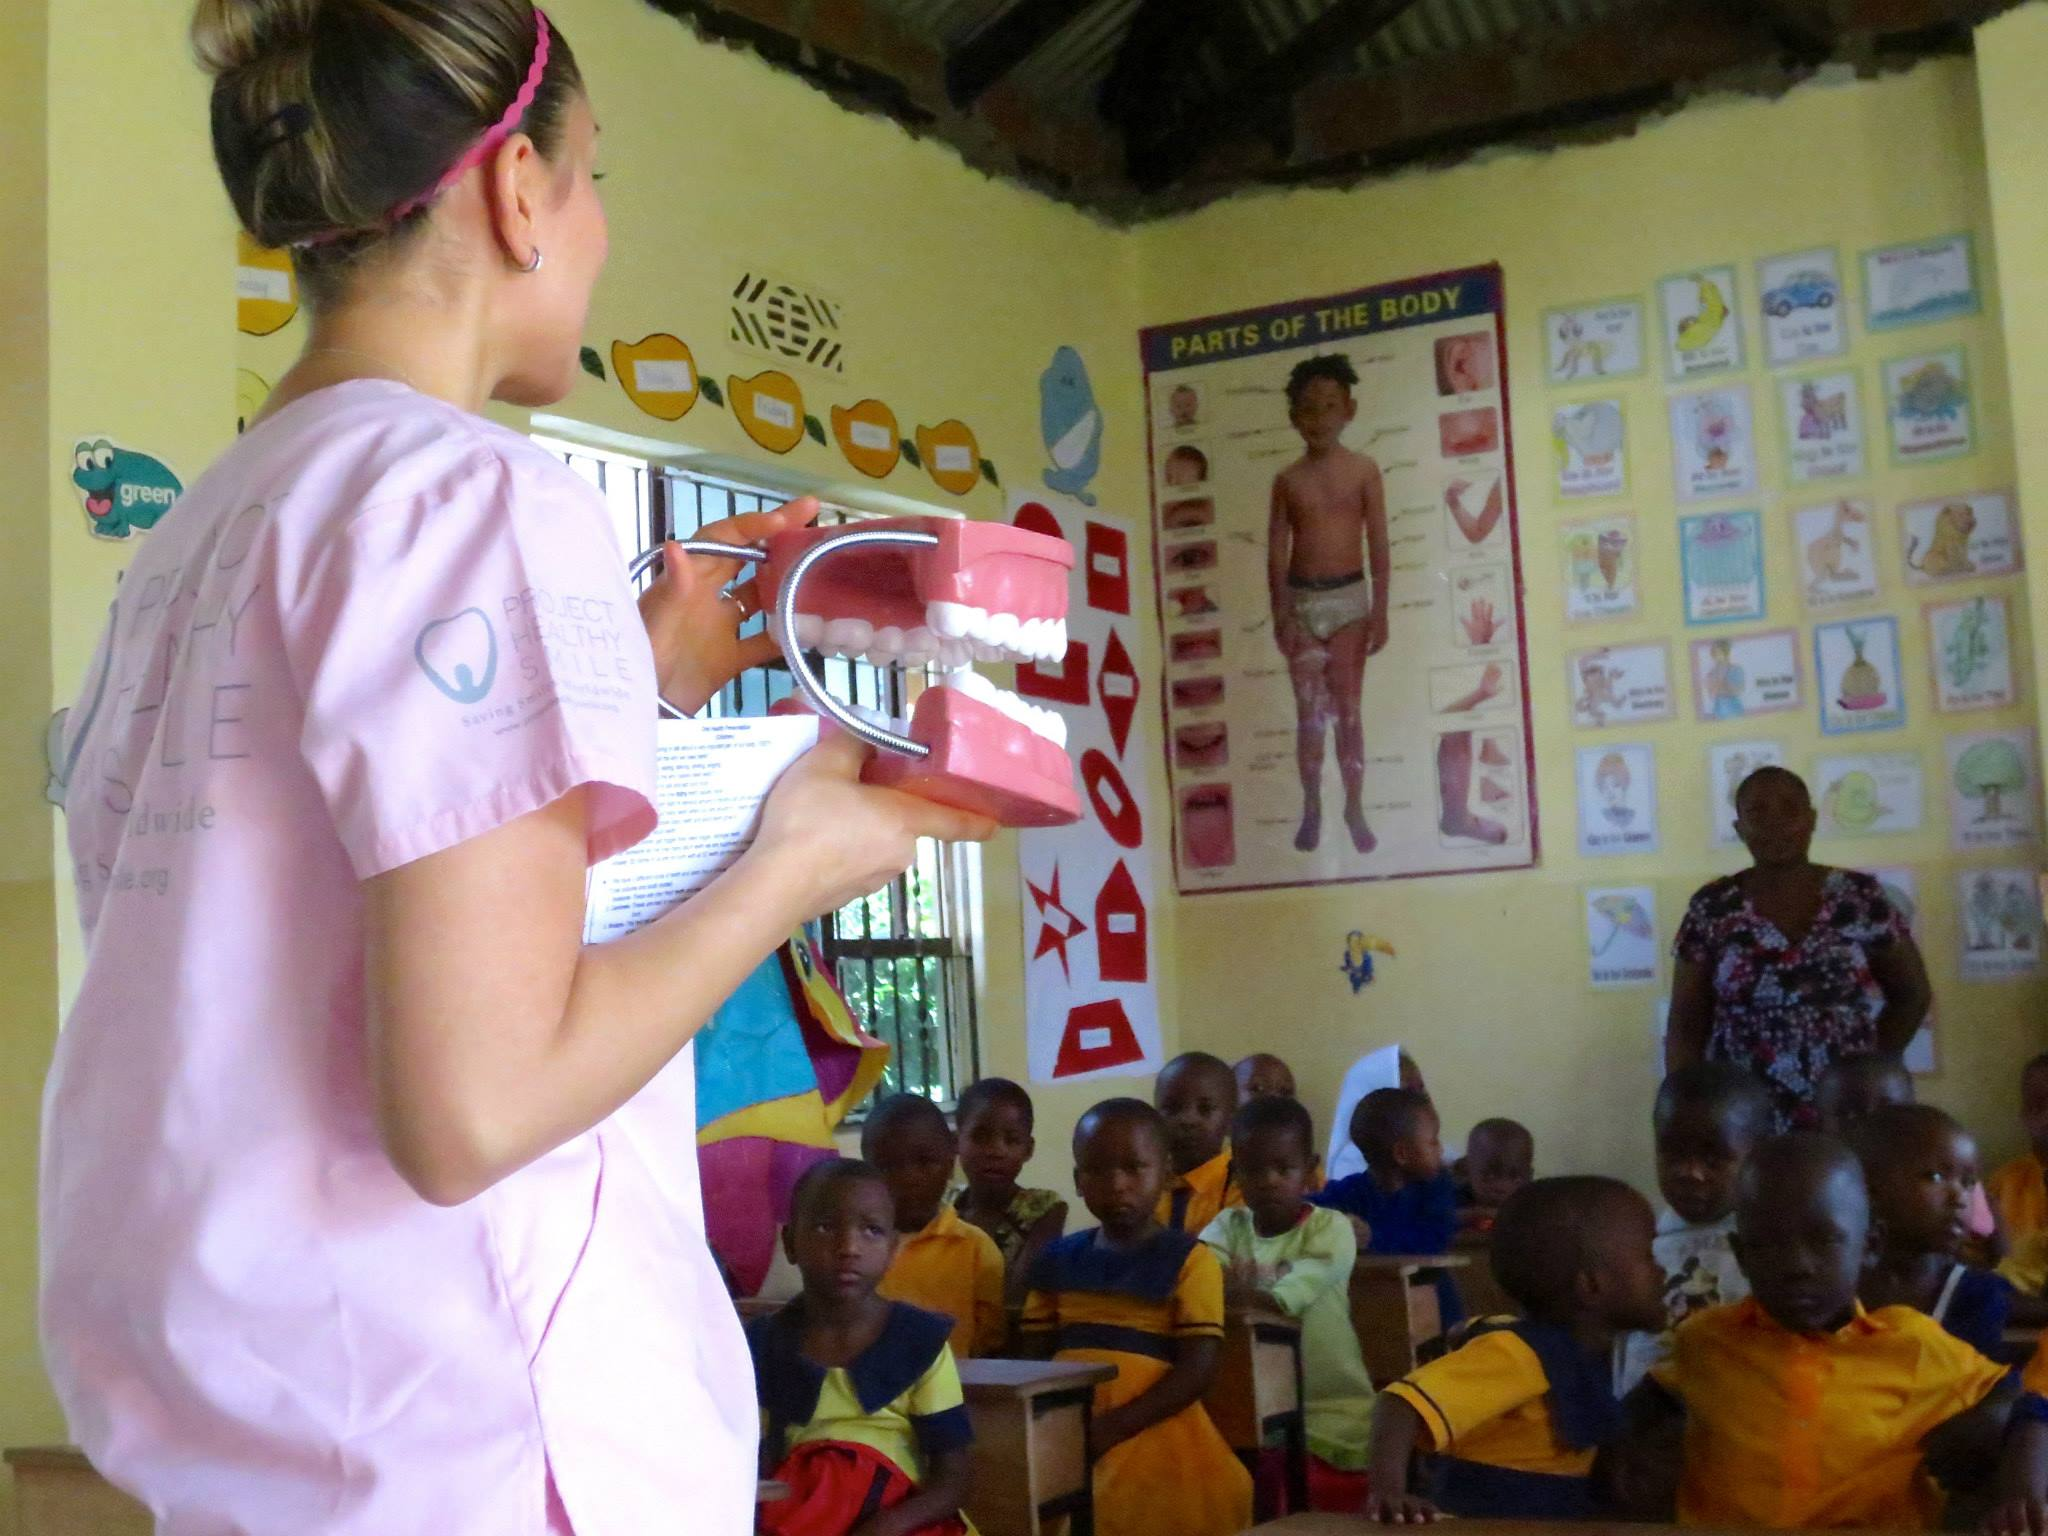 Michelle providing oral health education to the children of TAFCOM. Tooth model shown was donated to the staff.